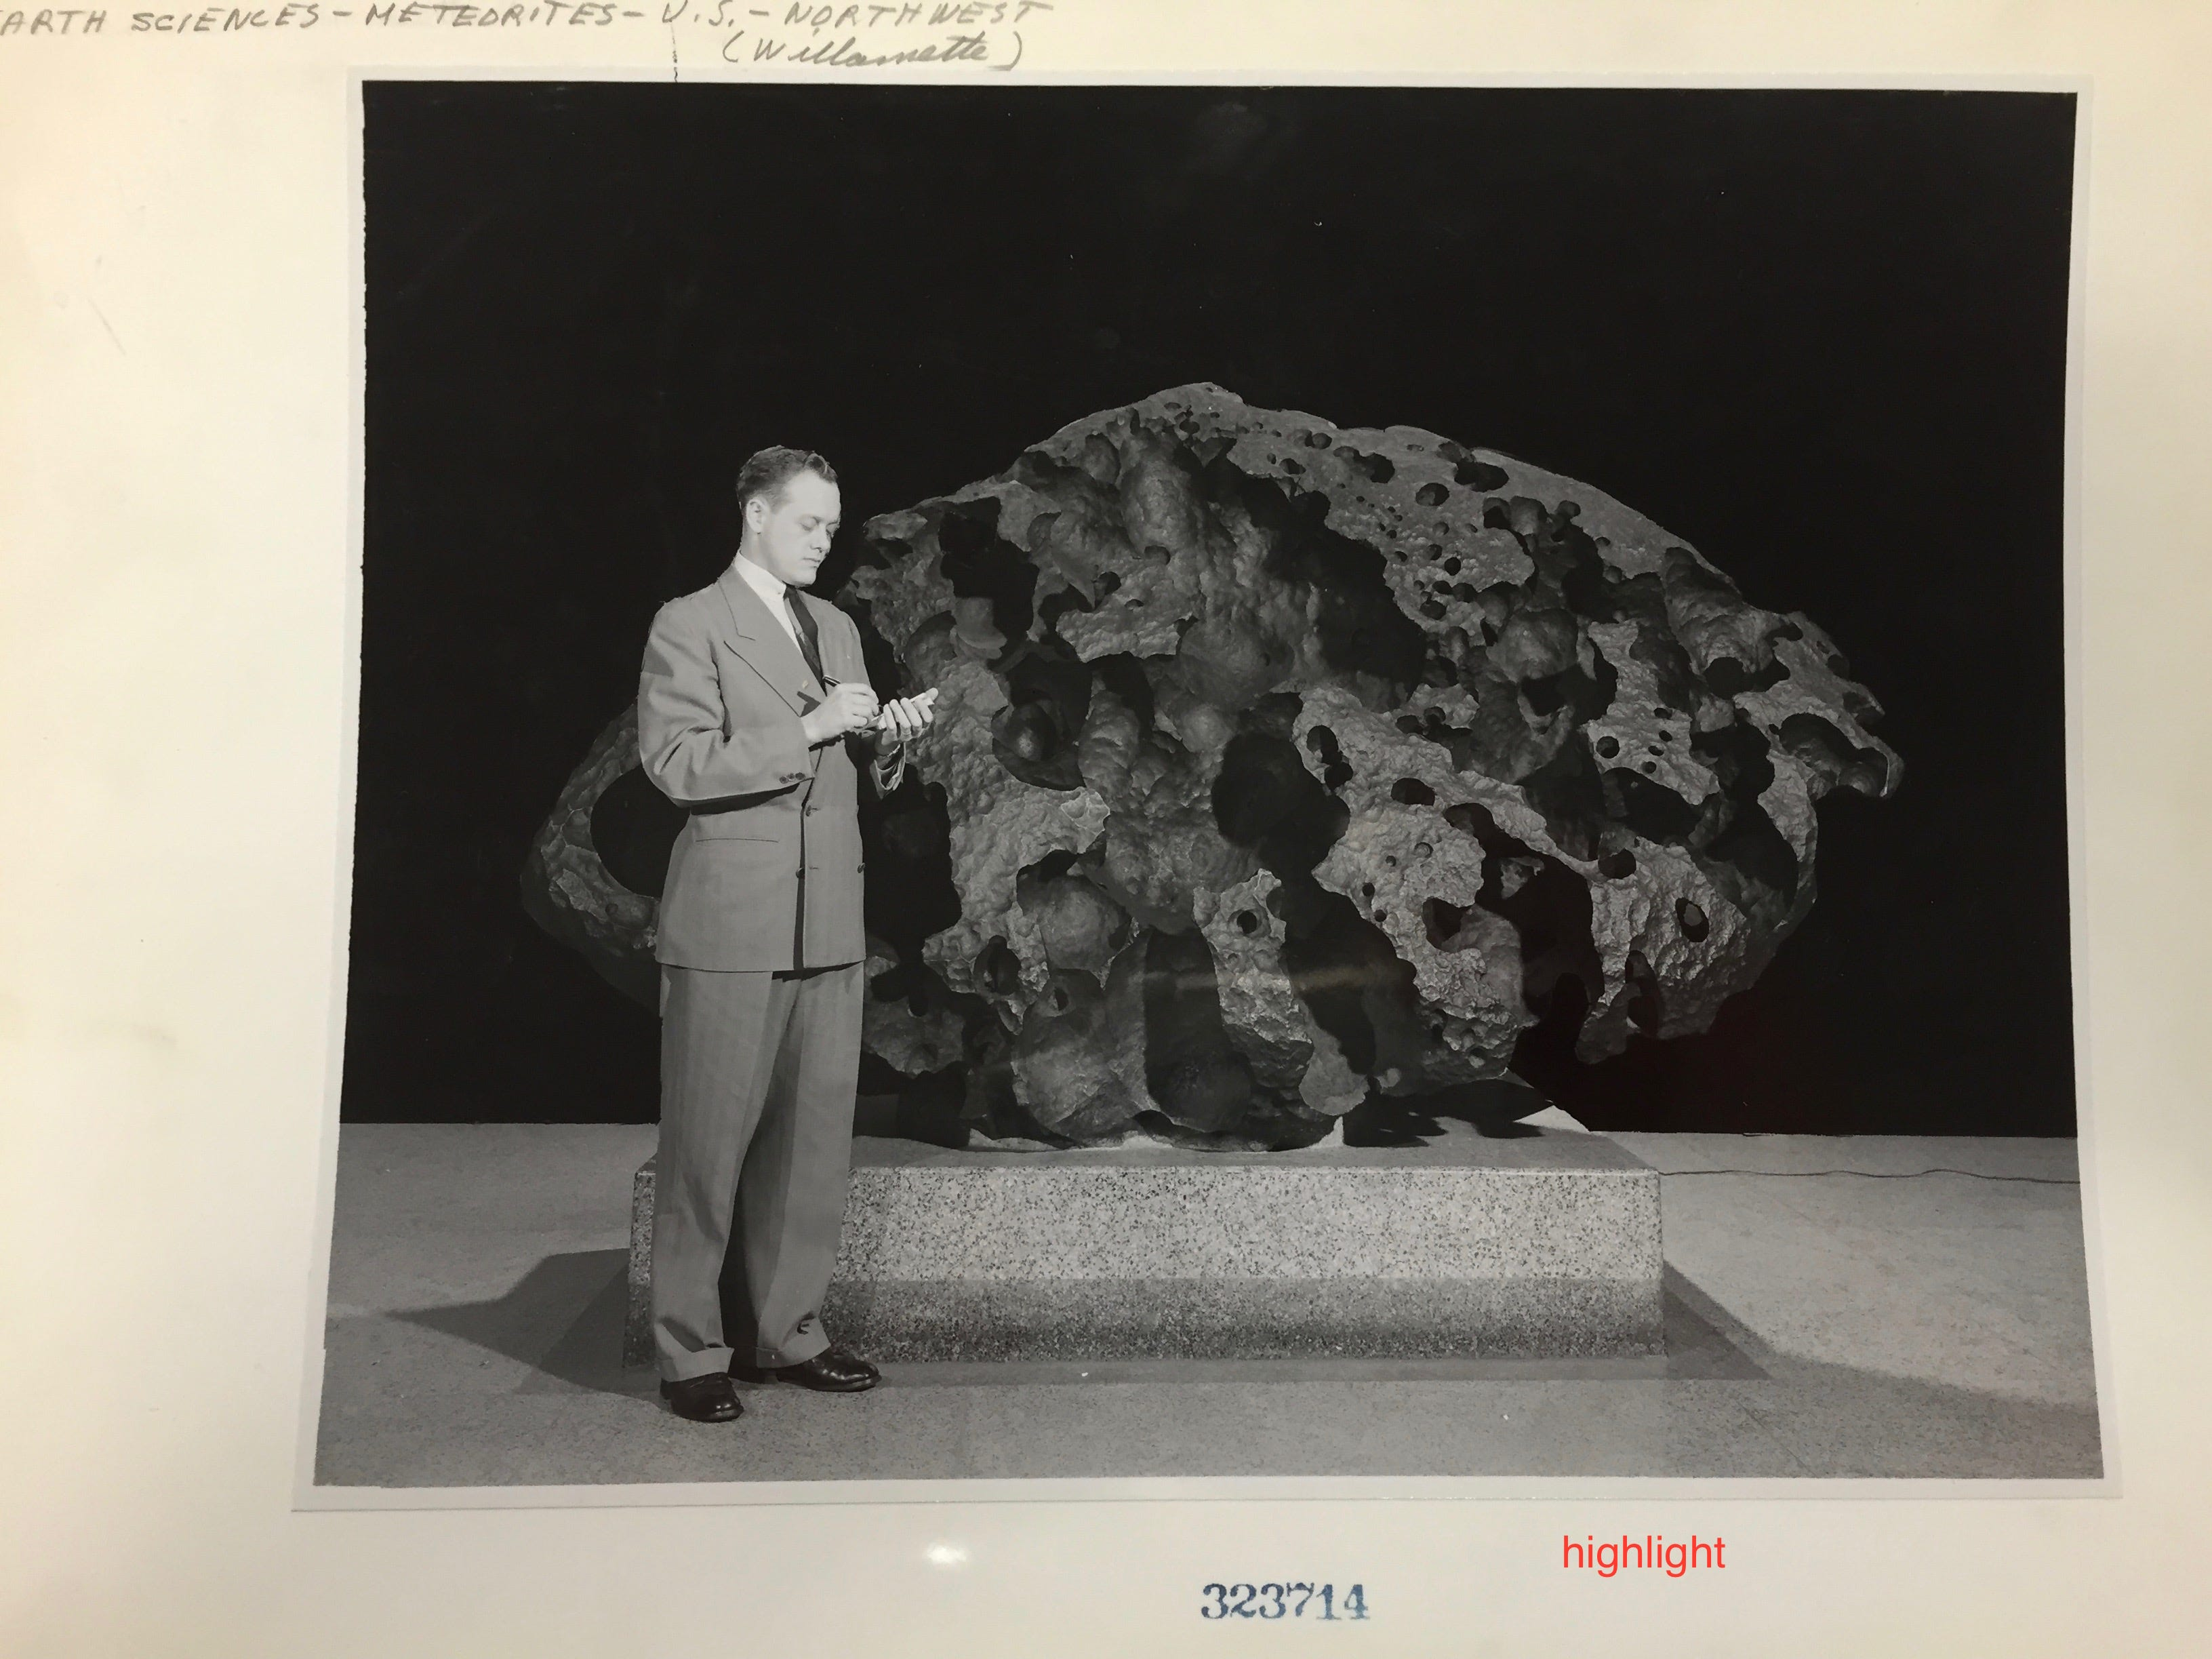 The Willamette Meteorite, or Tomanowos, has been on continuous display at the American Museum of Natural History in New York City since 1906.